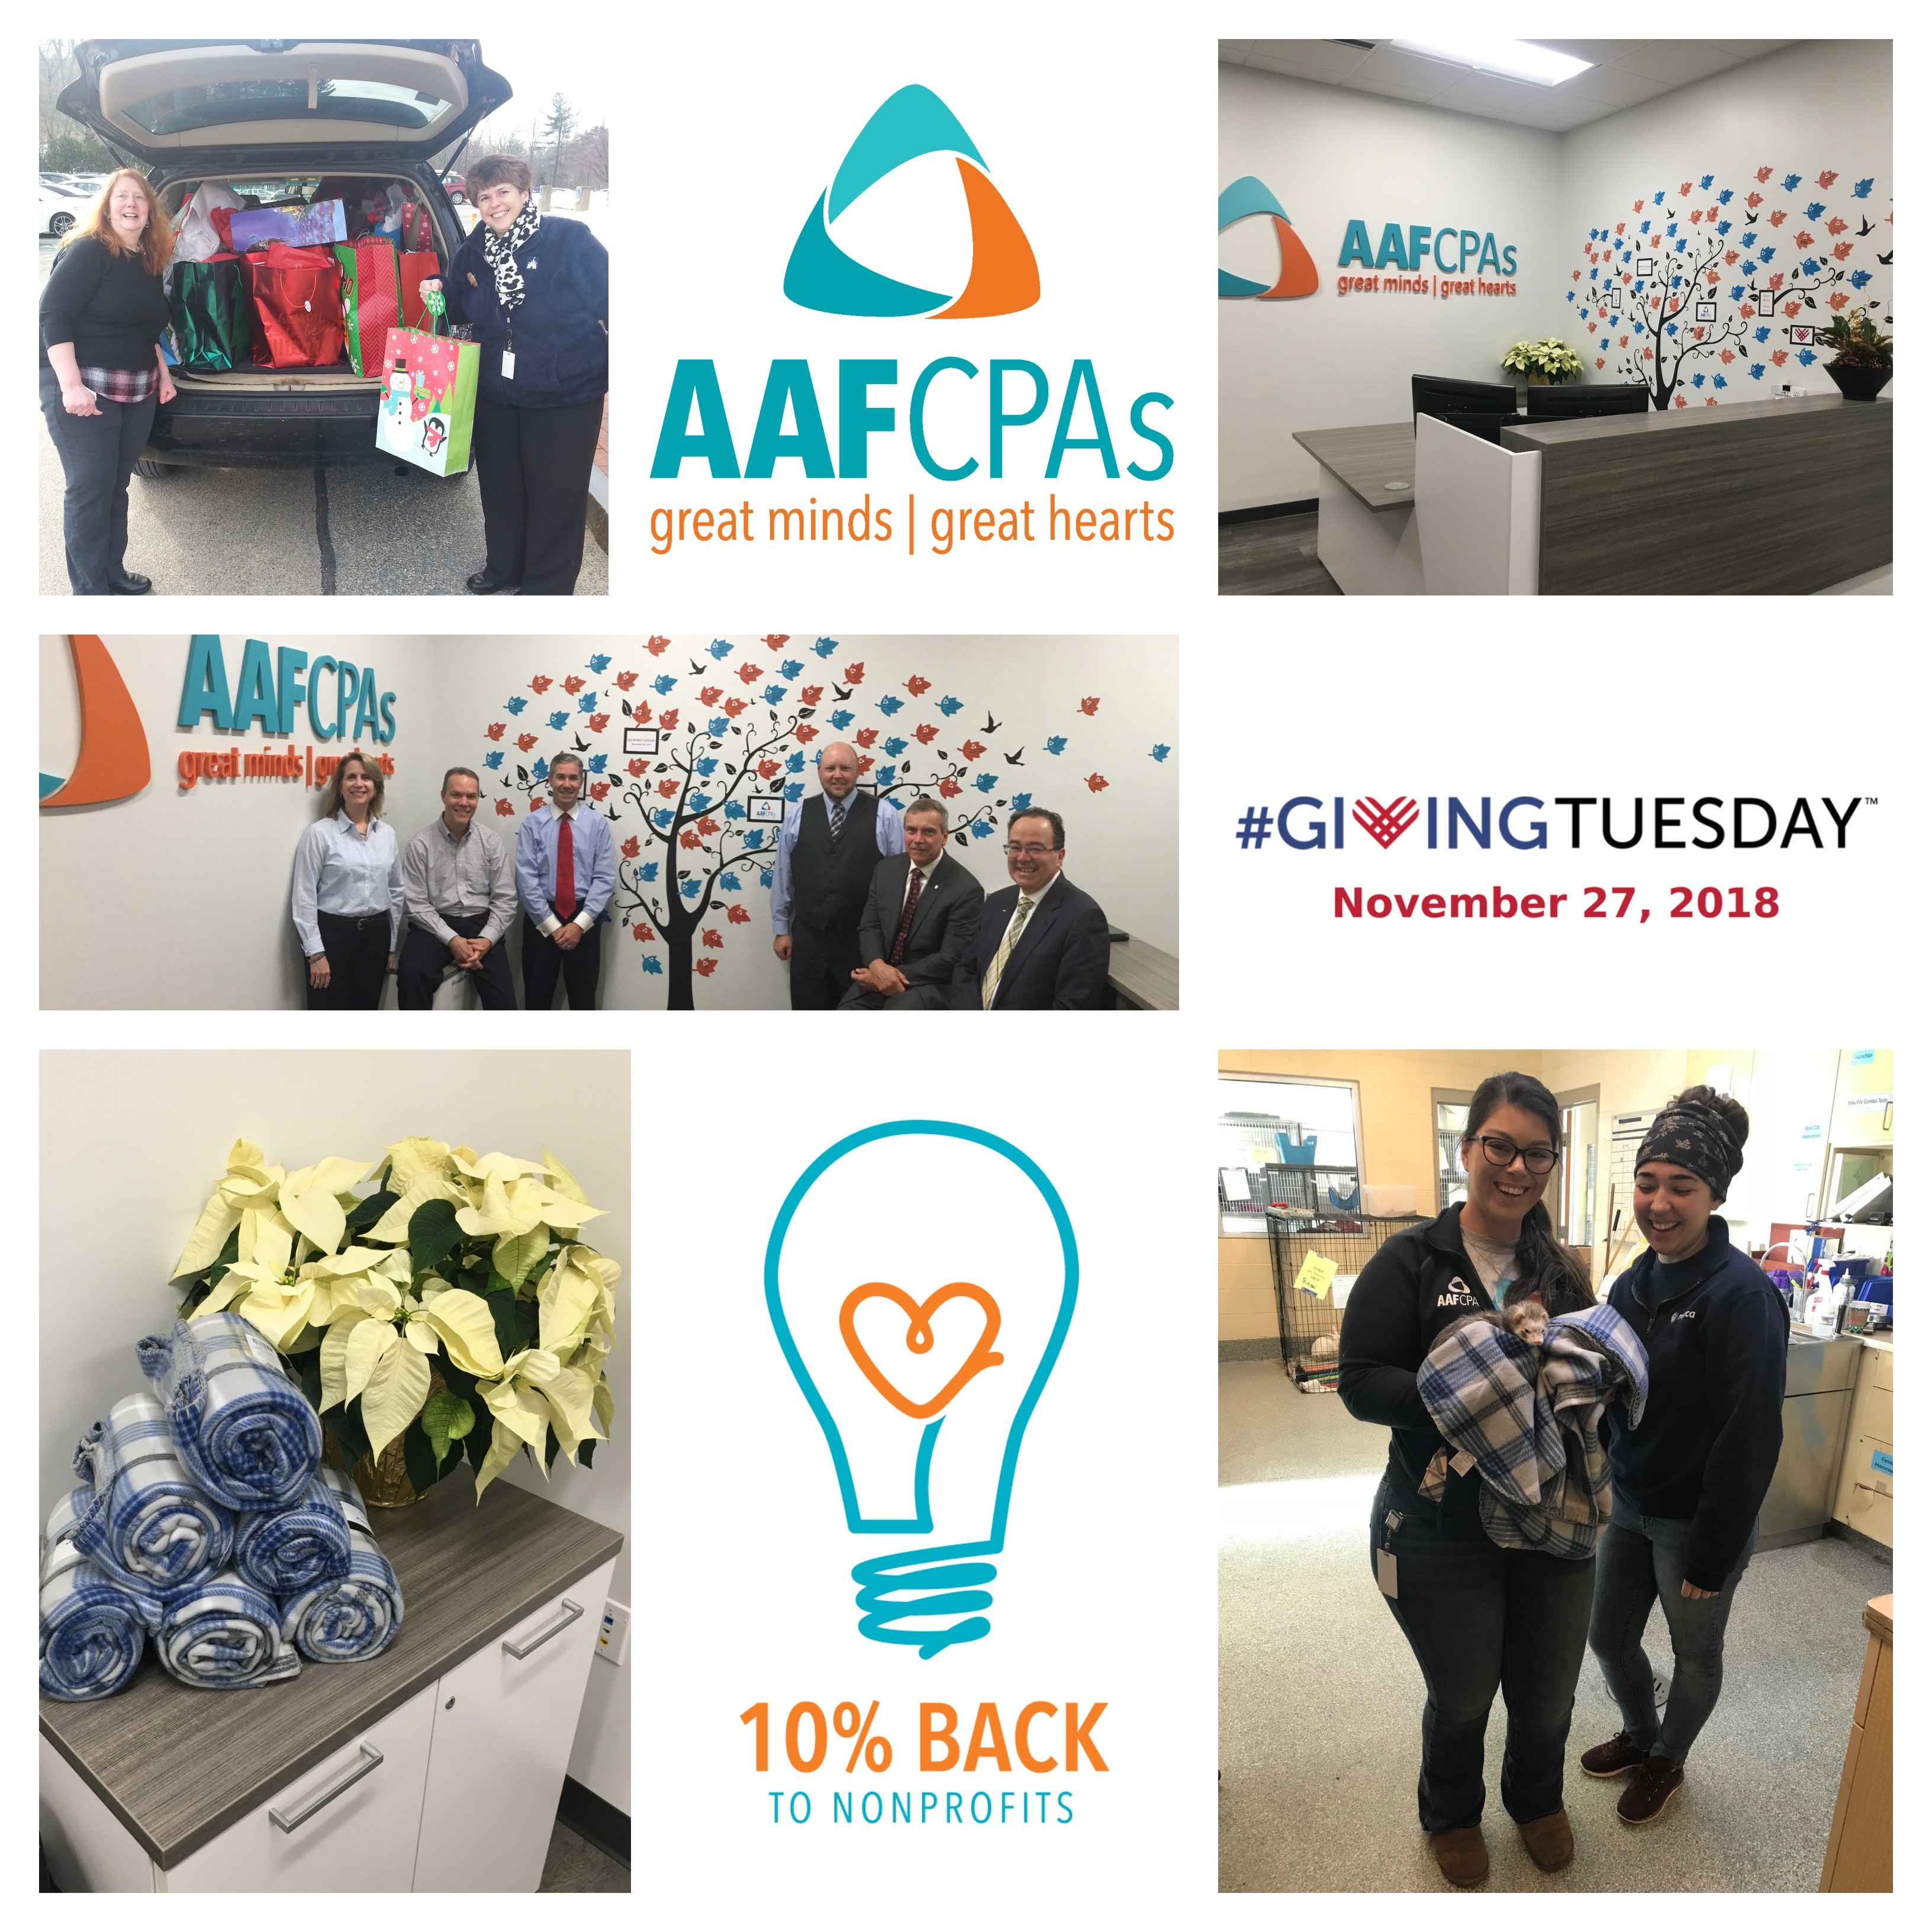 AAFCPAs' #GivingTuesday Match Donates Over $31K to Charities